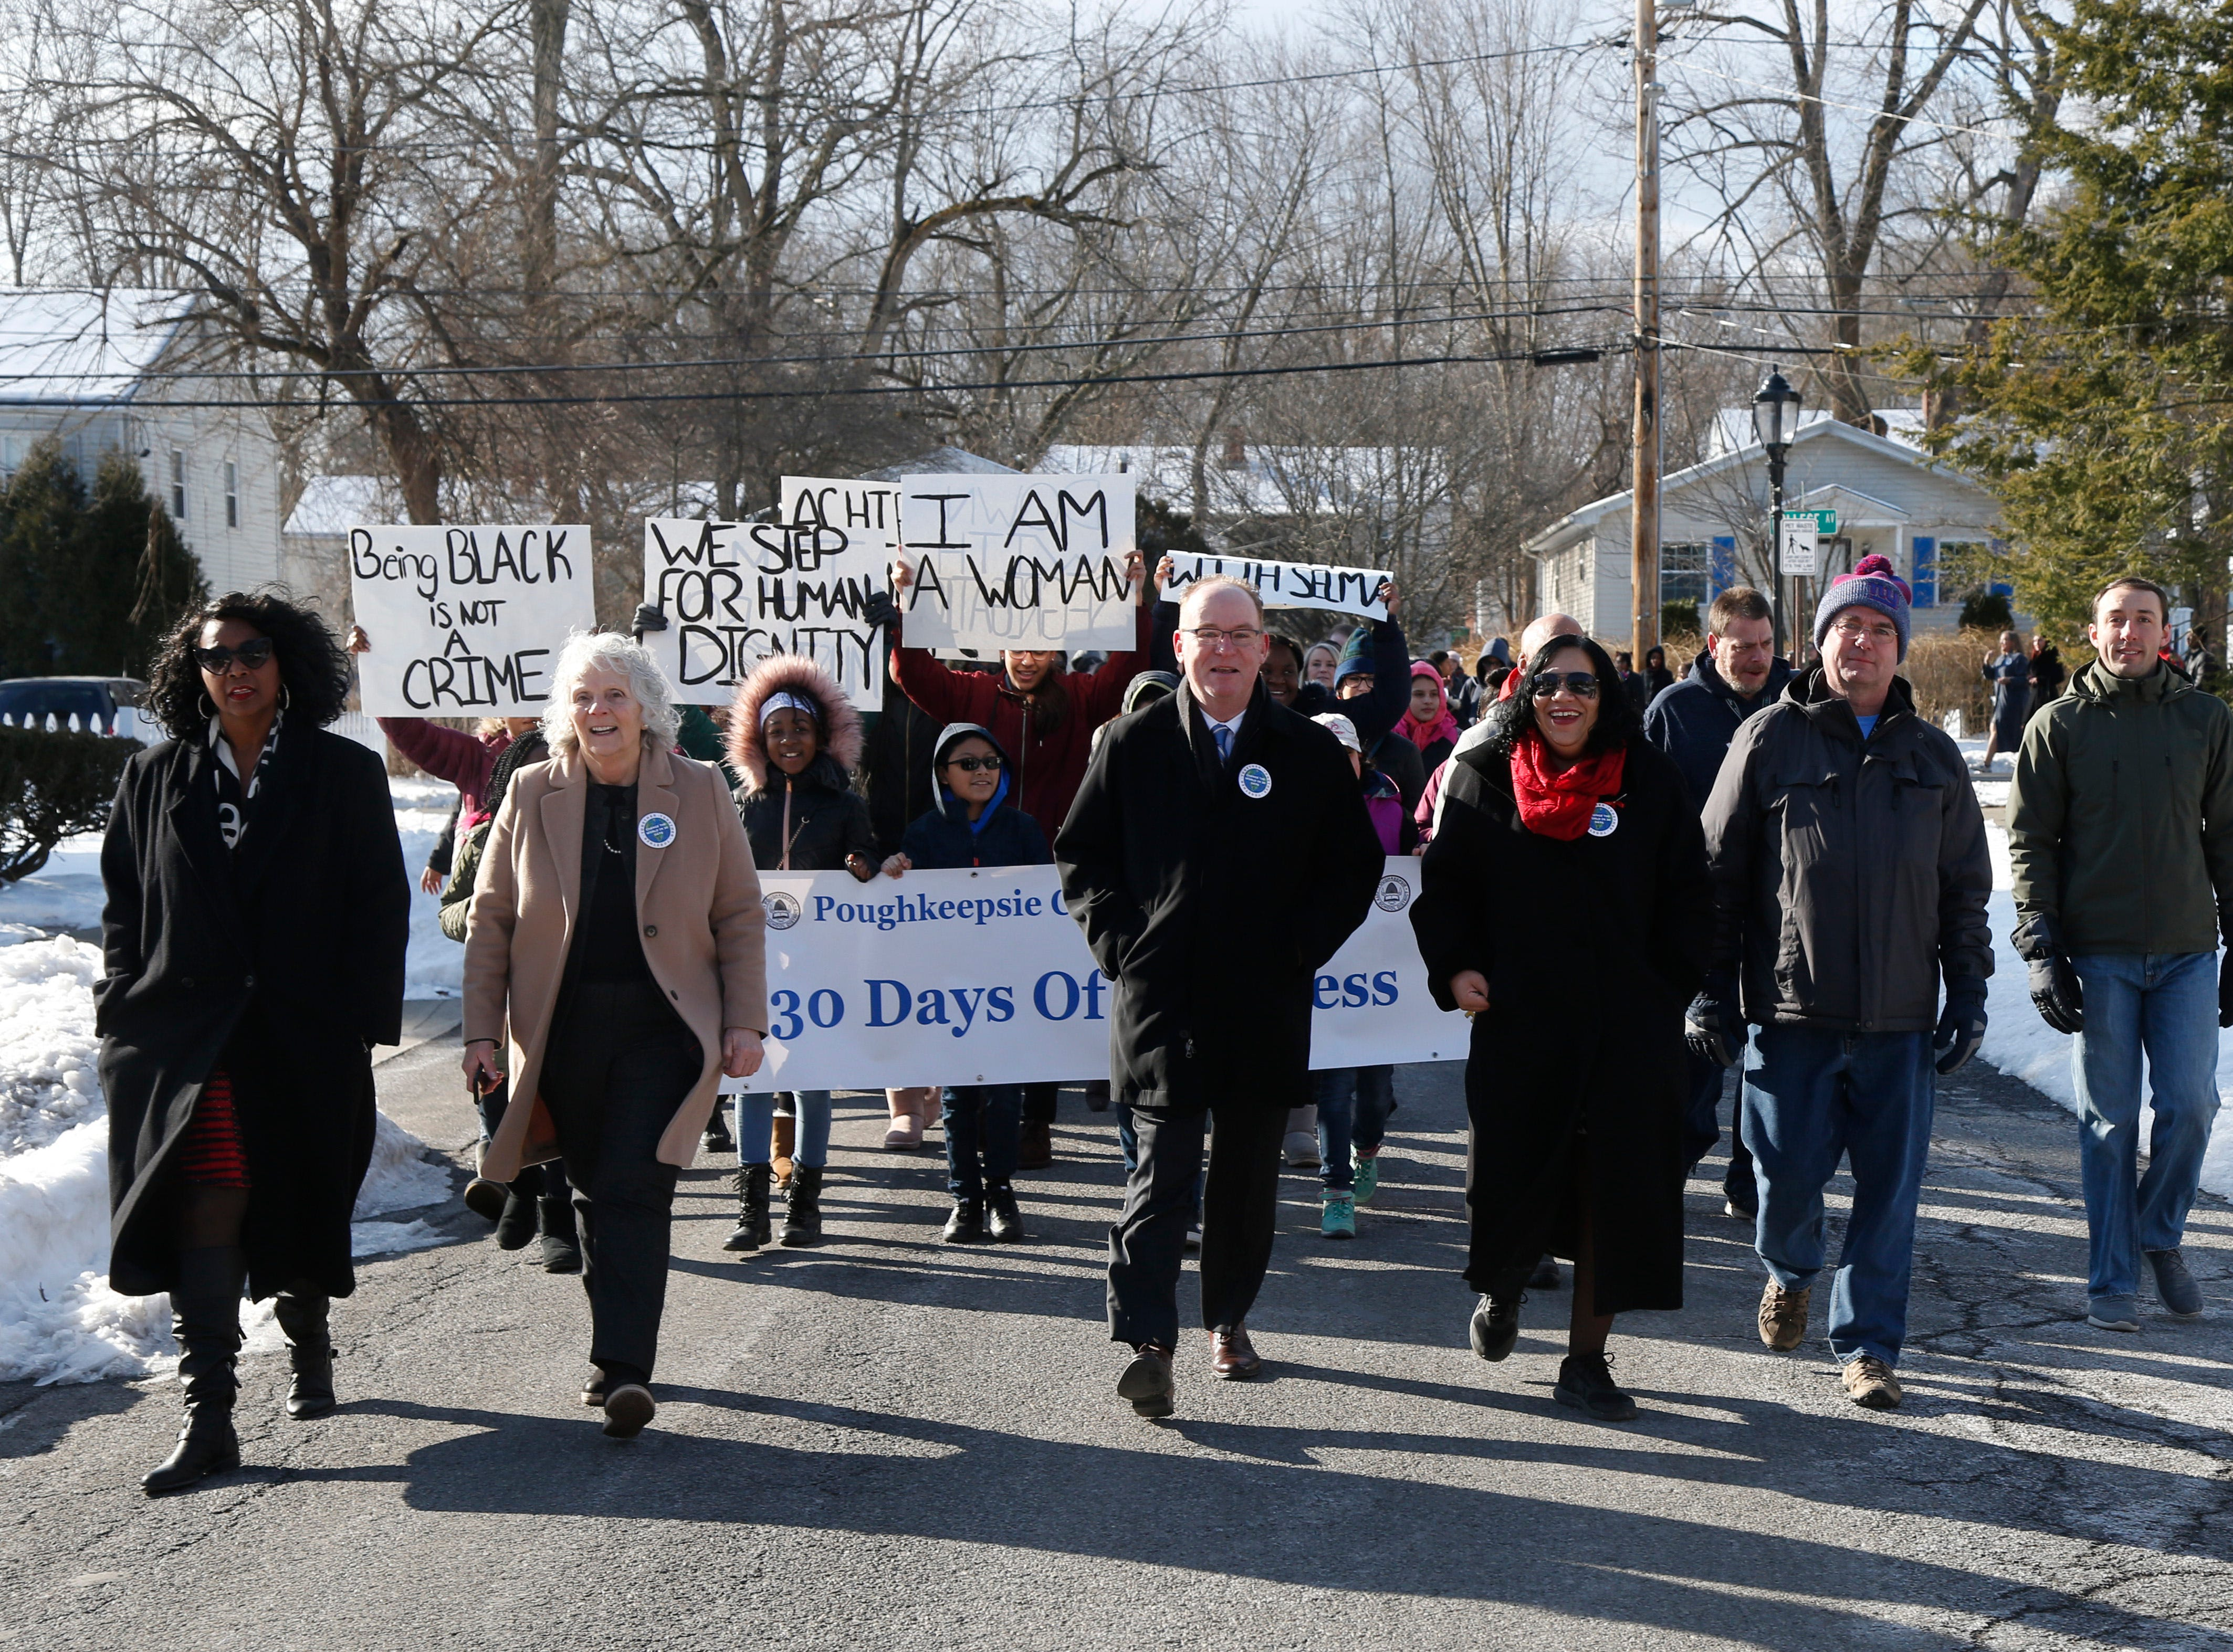 Joined by distirict administration and local politicians, students from the City of Poughkeepsie school district participate in Thursday's Martin Luther King Celebration, including a peace walk at Poughkeepsie High School on February 14, 2019.